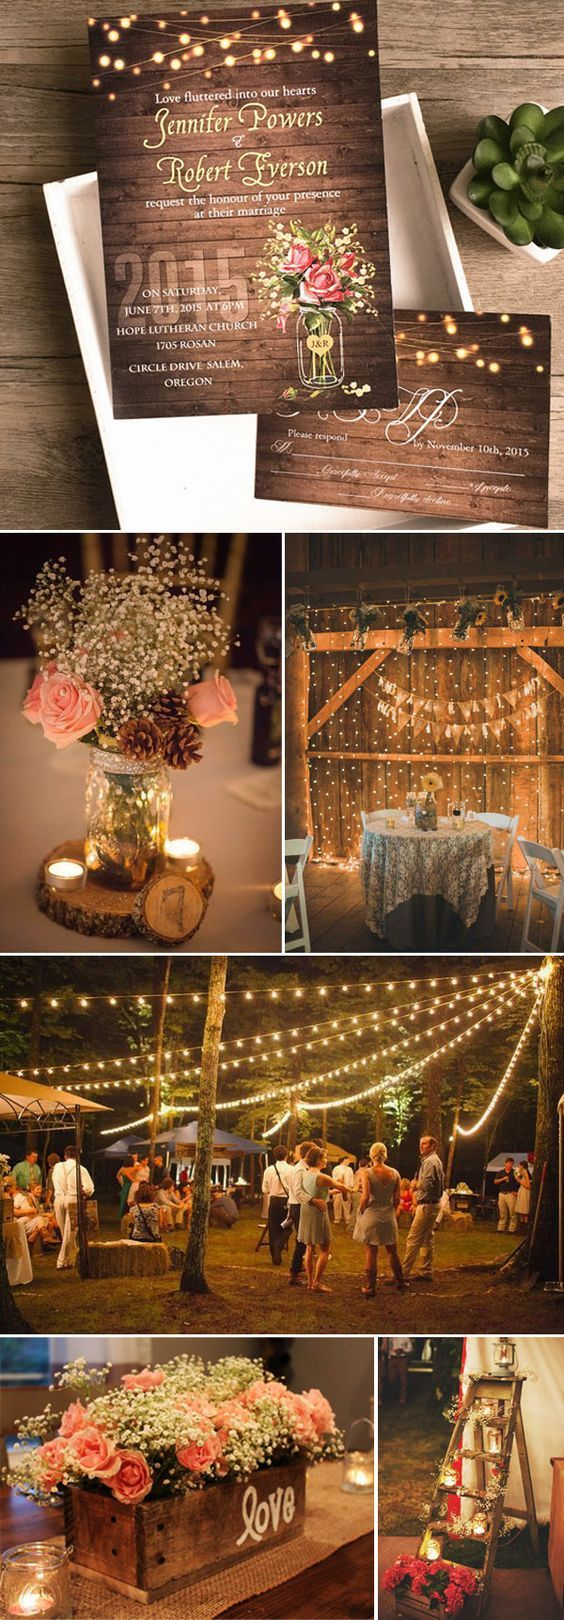 country rustic wedding invitations for spring 2016 inspired by mason jars and string lights: